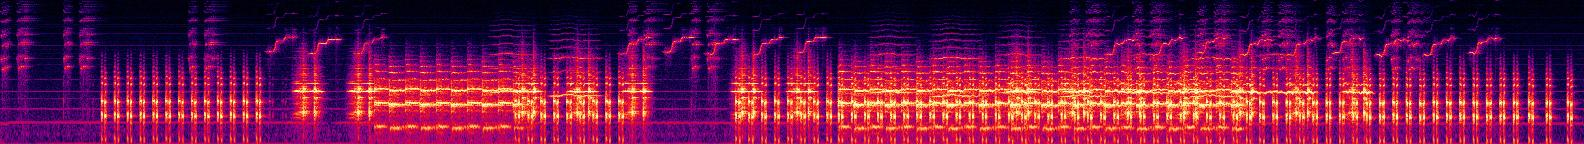 A Game of Chess - 12. Game B - Spectrogram.jpg